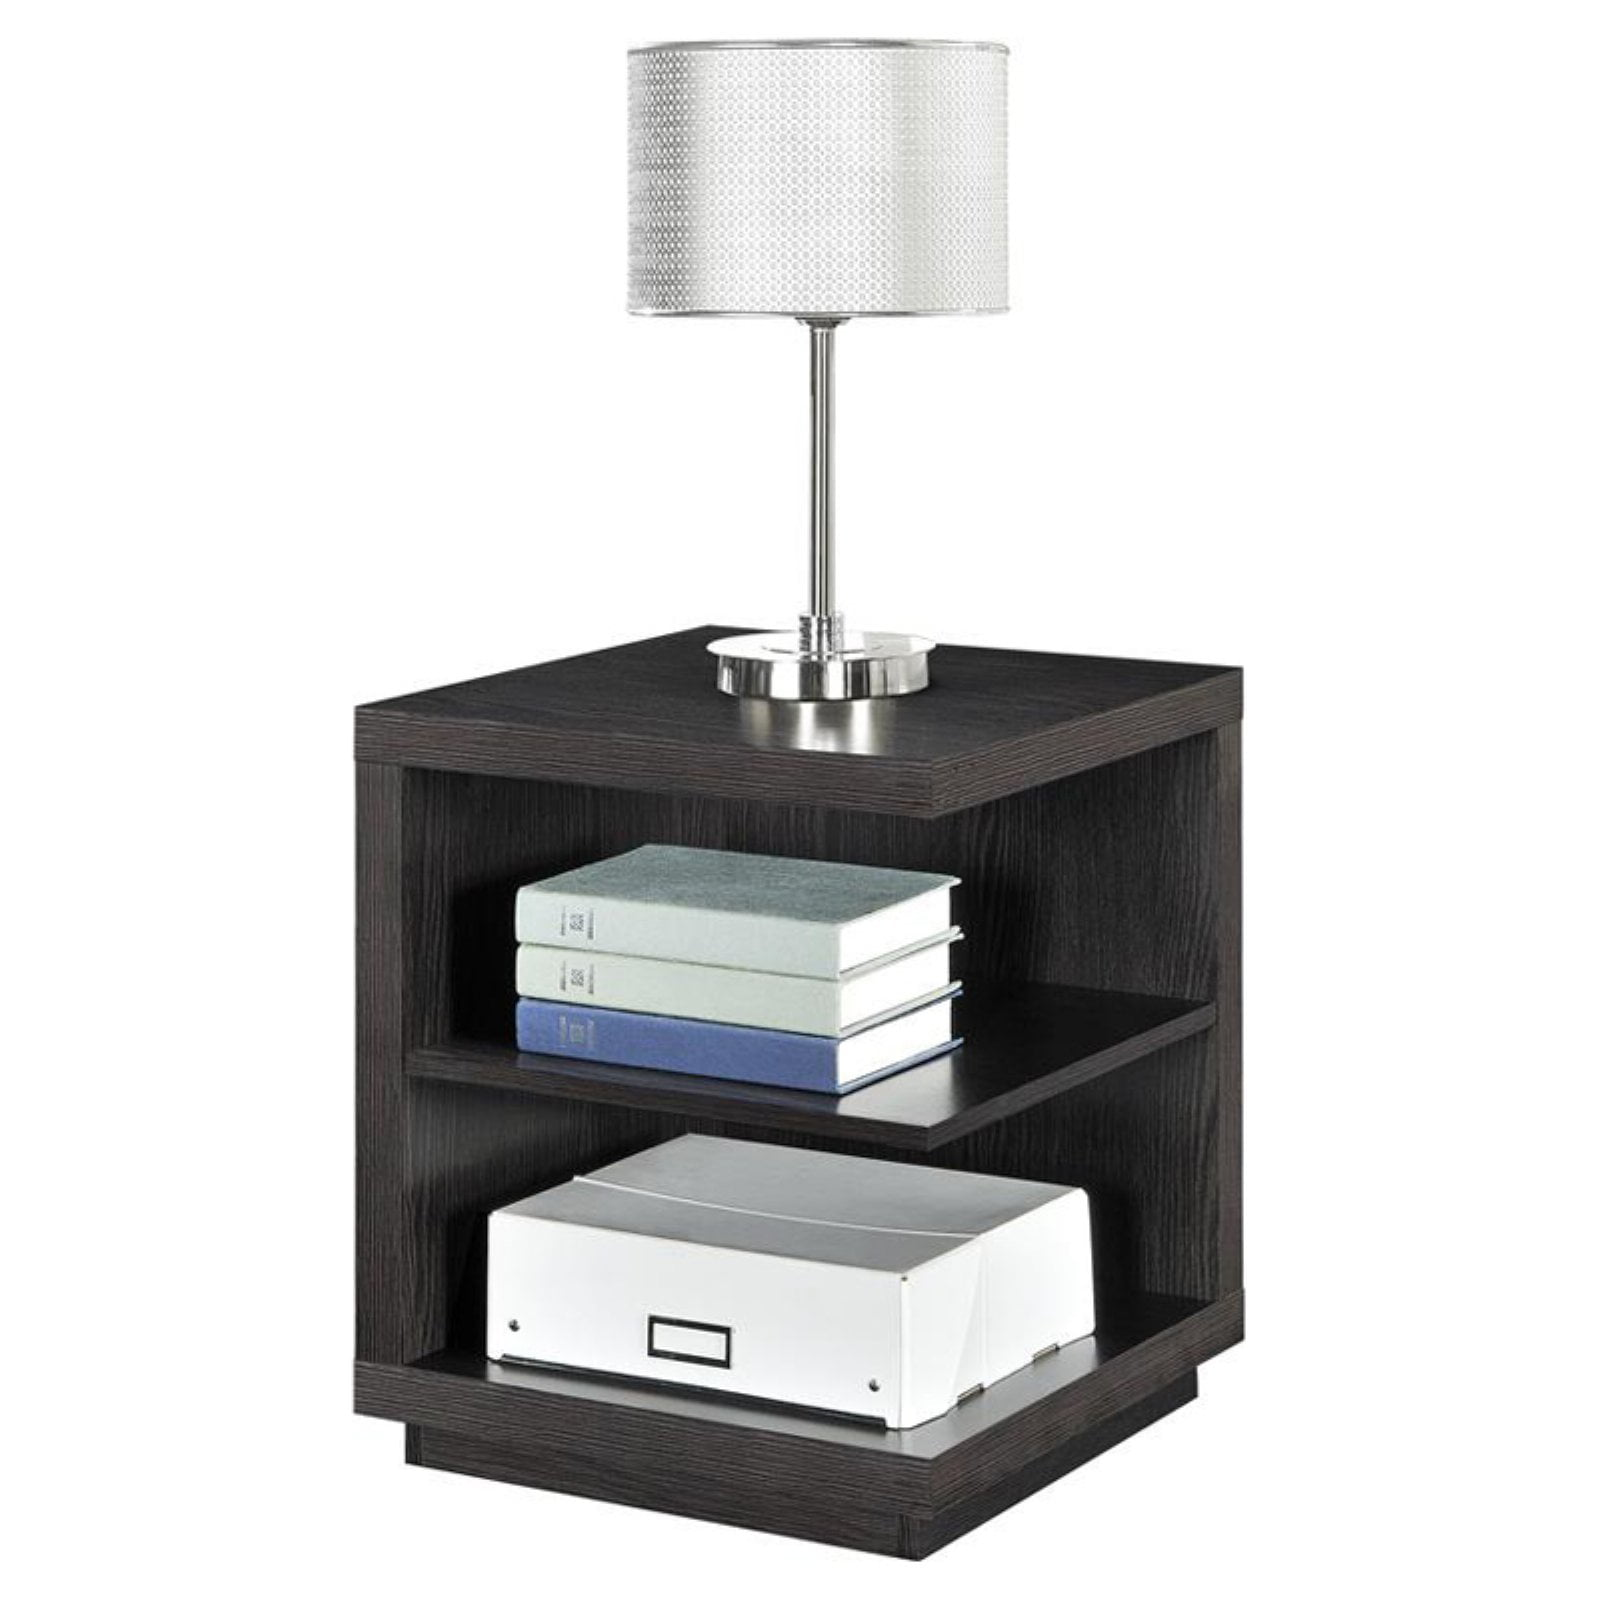 Ameriwood Home Fremont Accent Table, Espresso by Altra Furniture